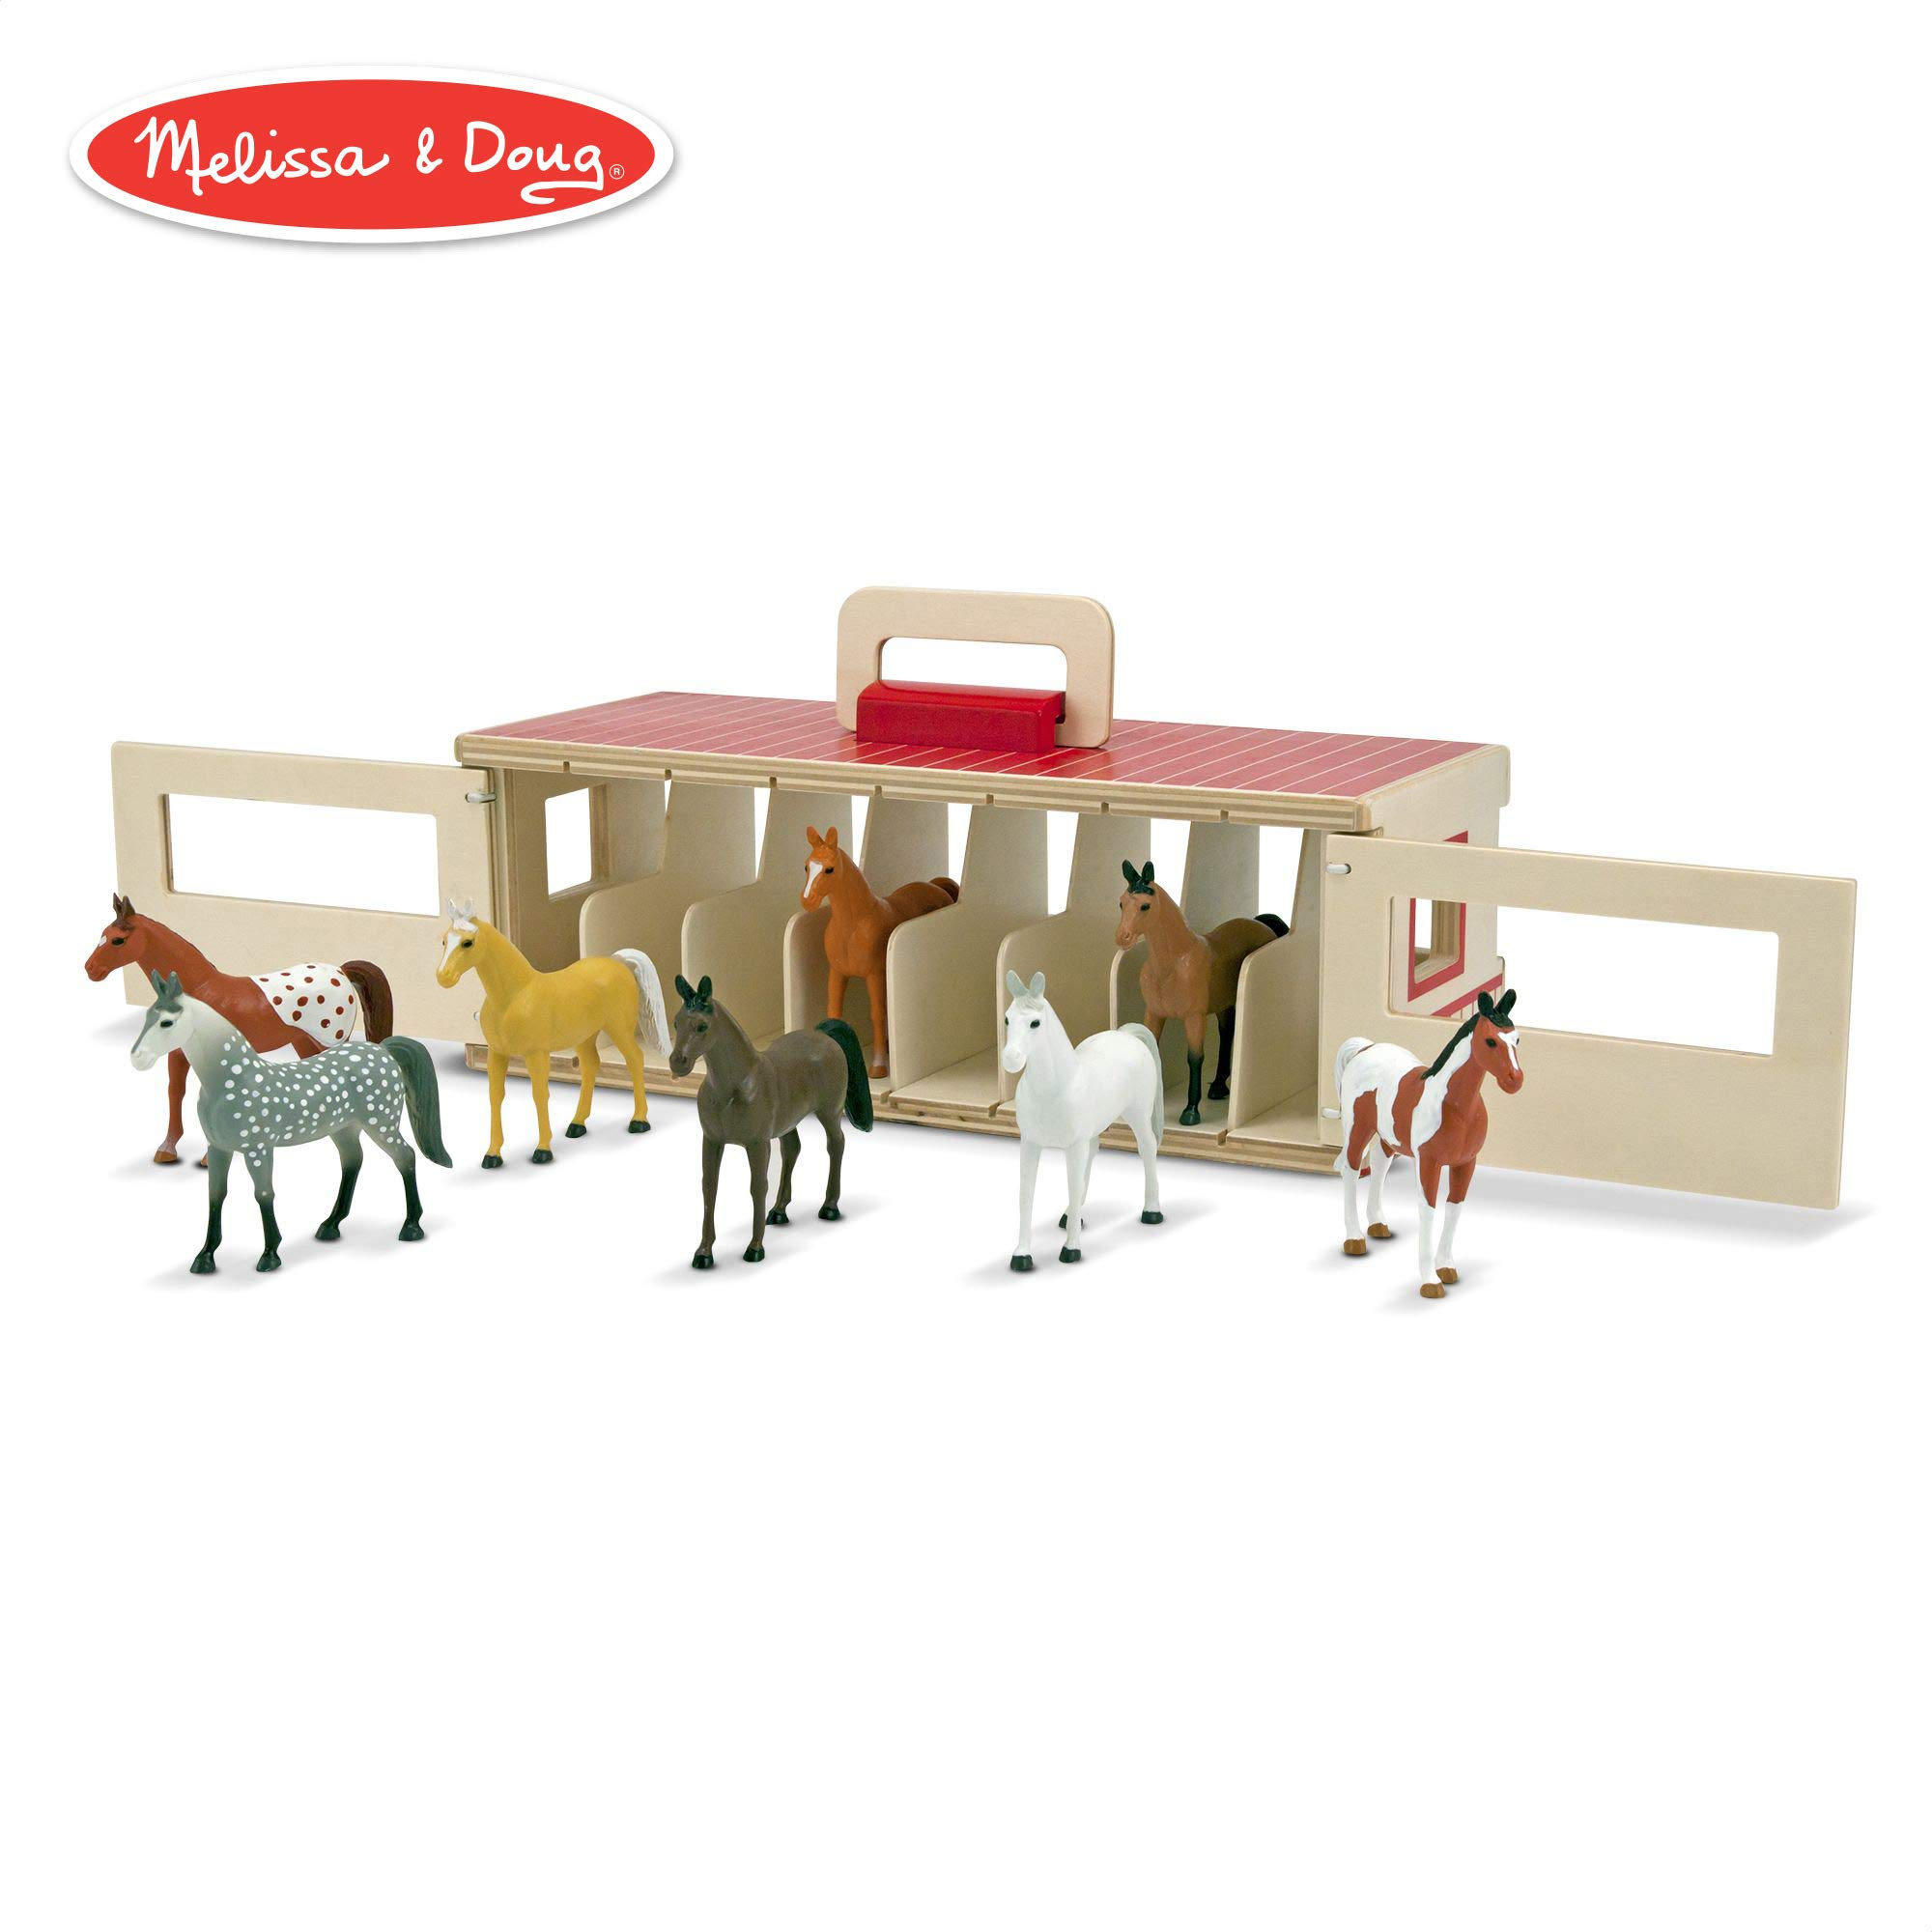 Melissa & Doug Take-Along Show-Horse Stable Play Set (Pretend Play, Encourages Creative Learning, 8 Toy Horses) by Melissa & Doug